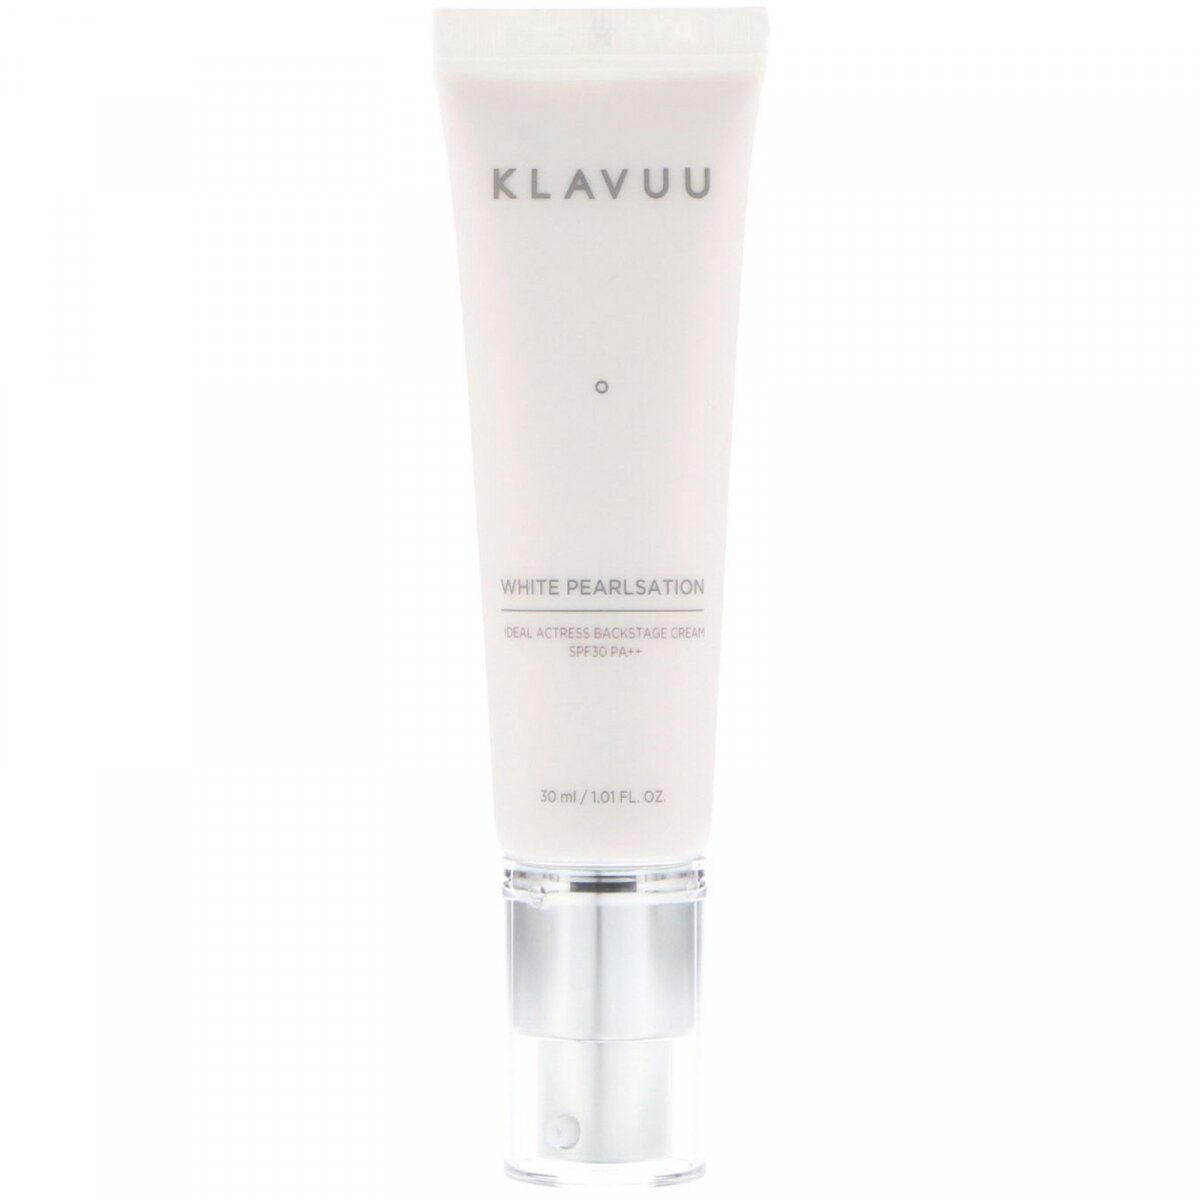 Крем для лица, White Pearlsation, Ideal Actress Backstage Cream, SPF30 PA ++, KLAVUU, 30 мл